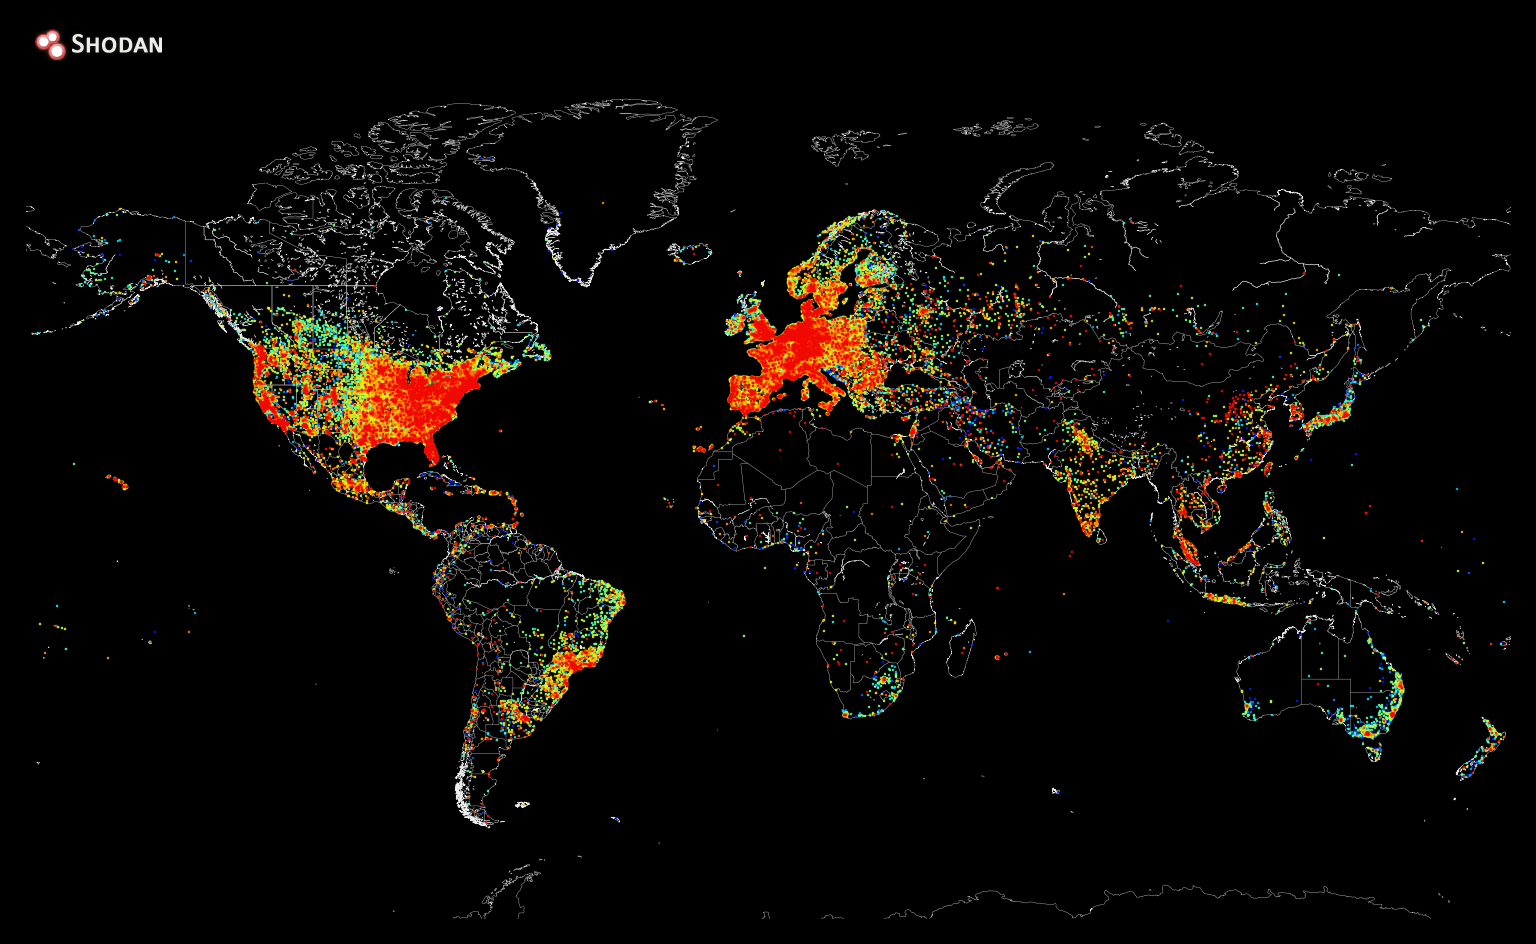 Everything connected to the Internet, in one map